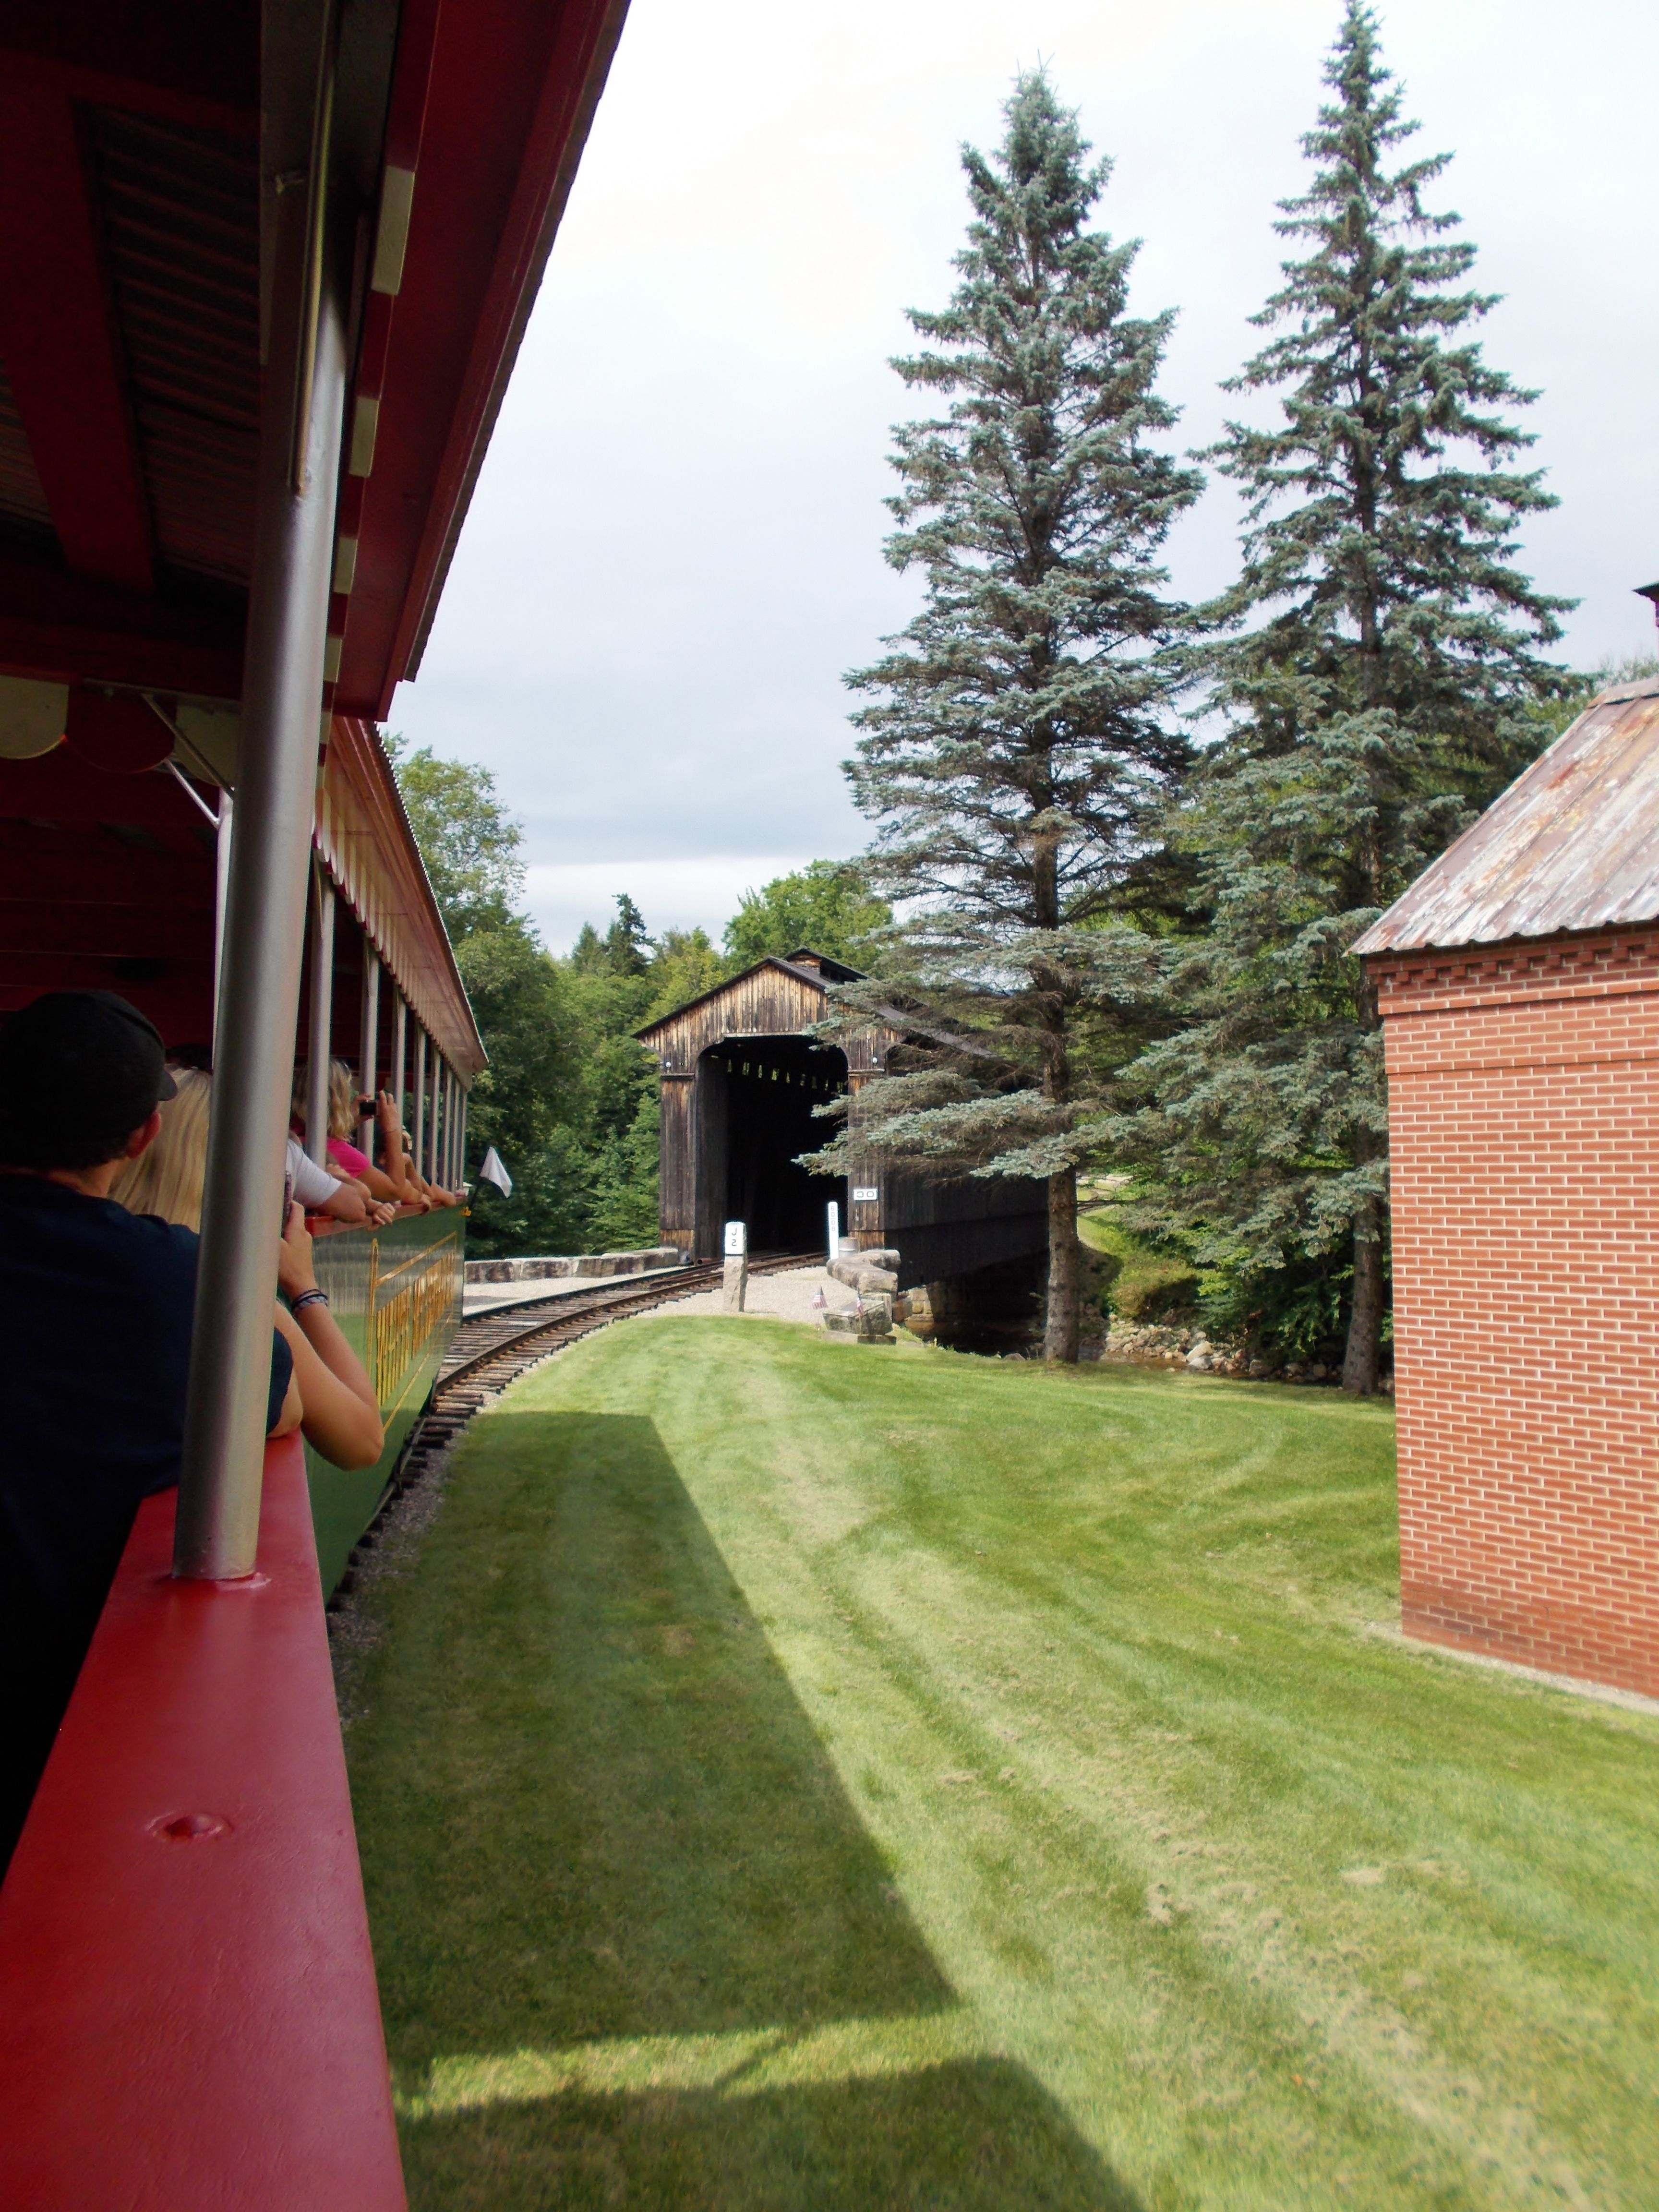 train ride at clark u0027s trading post lincoln nh august 2013 new